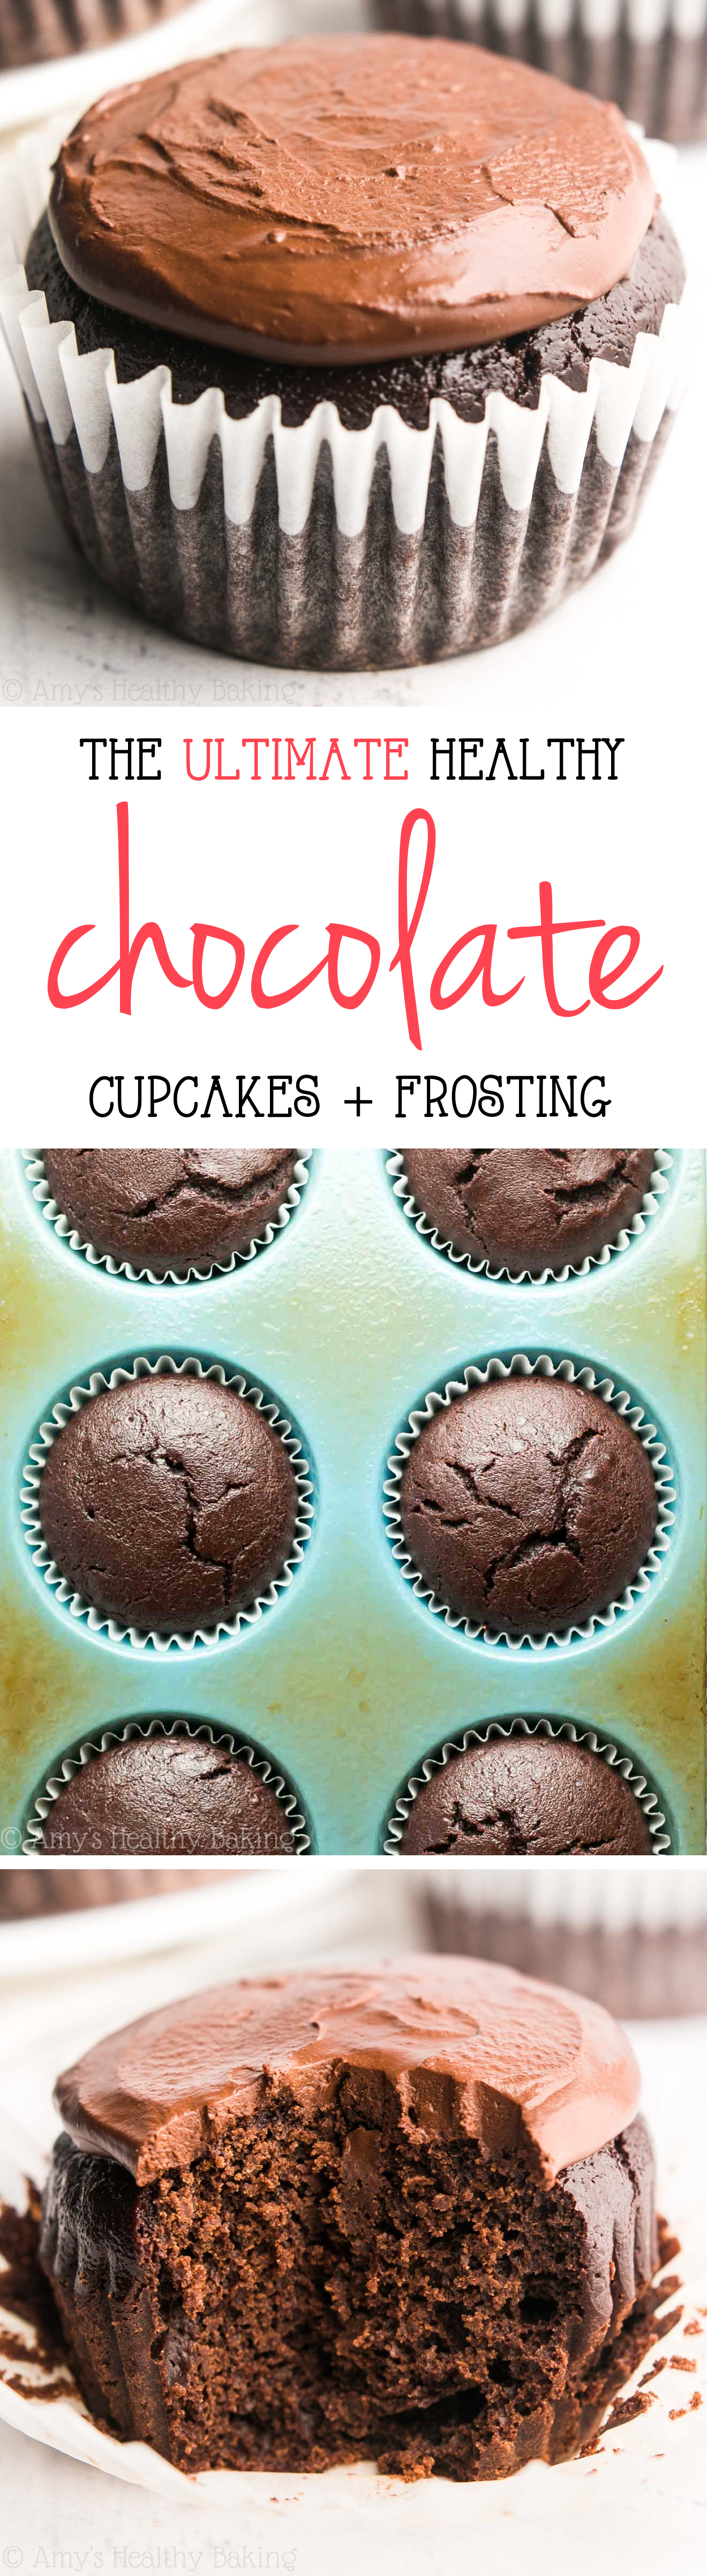 The Ultimate Healthy Dark Chocolate Cupcakes | Amy's ...